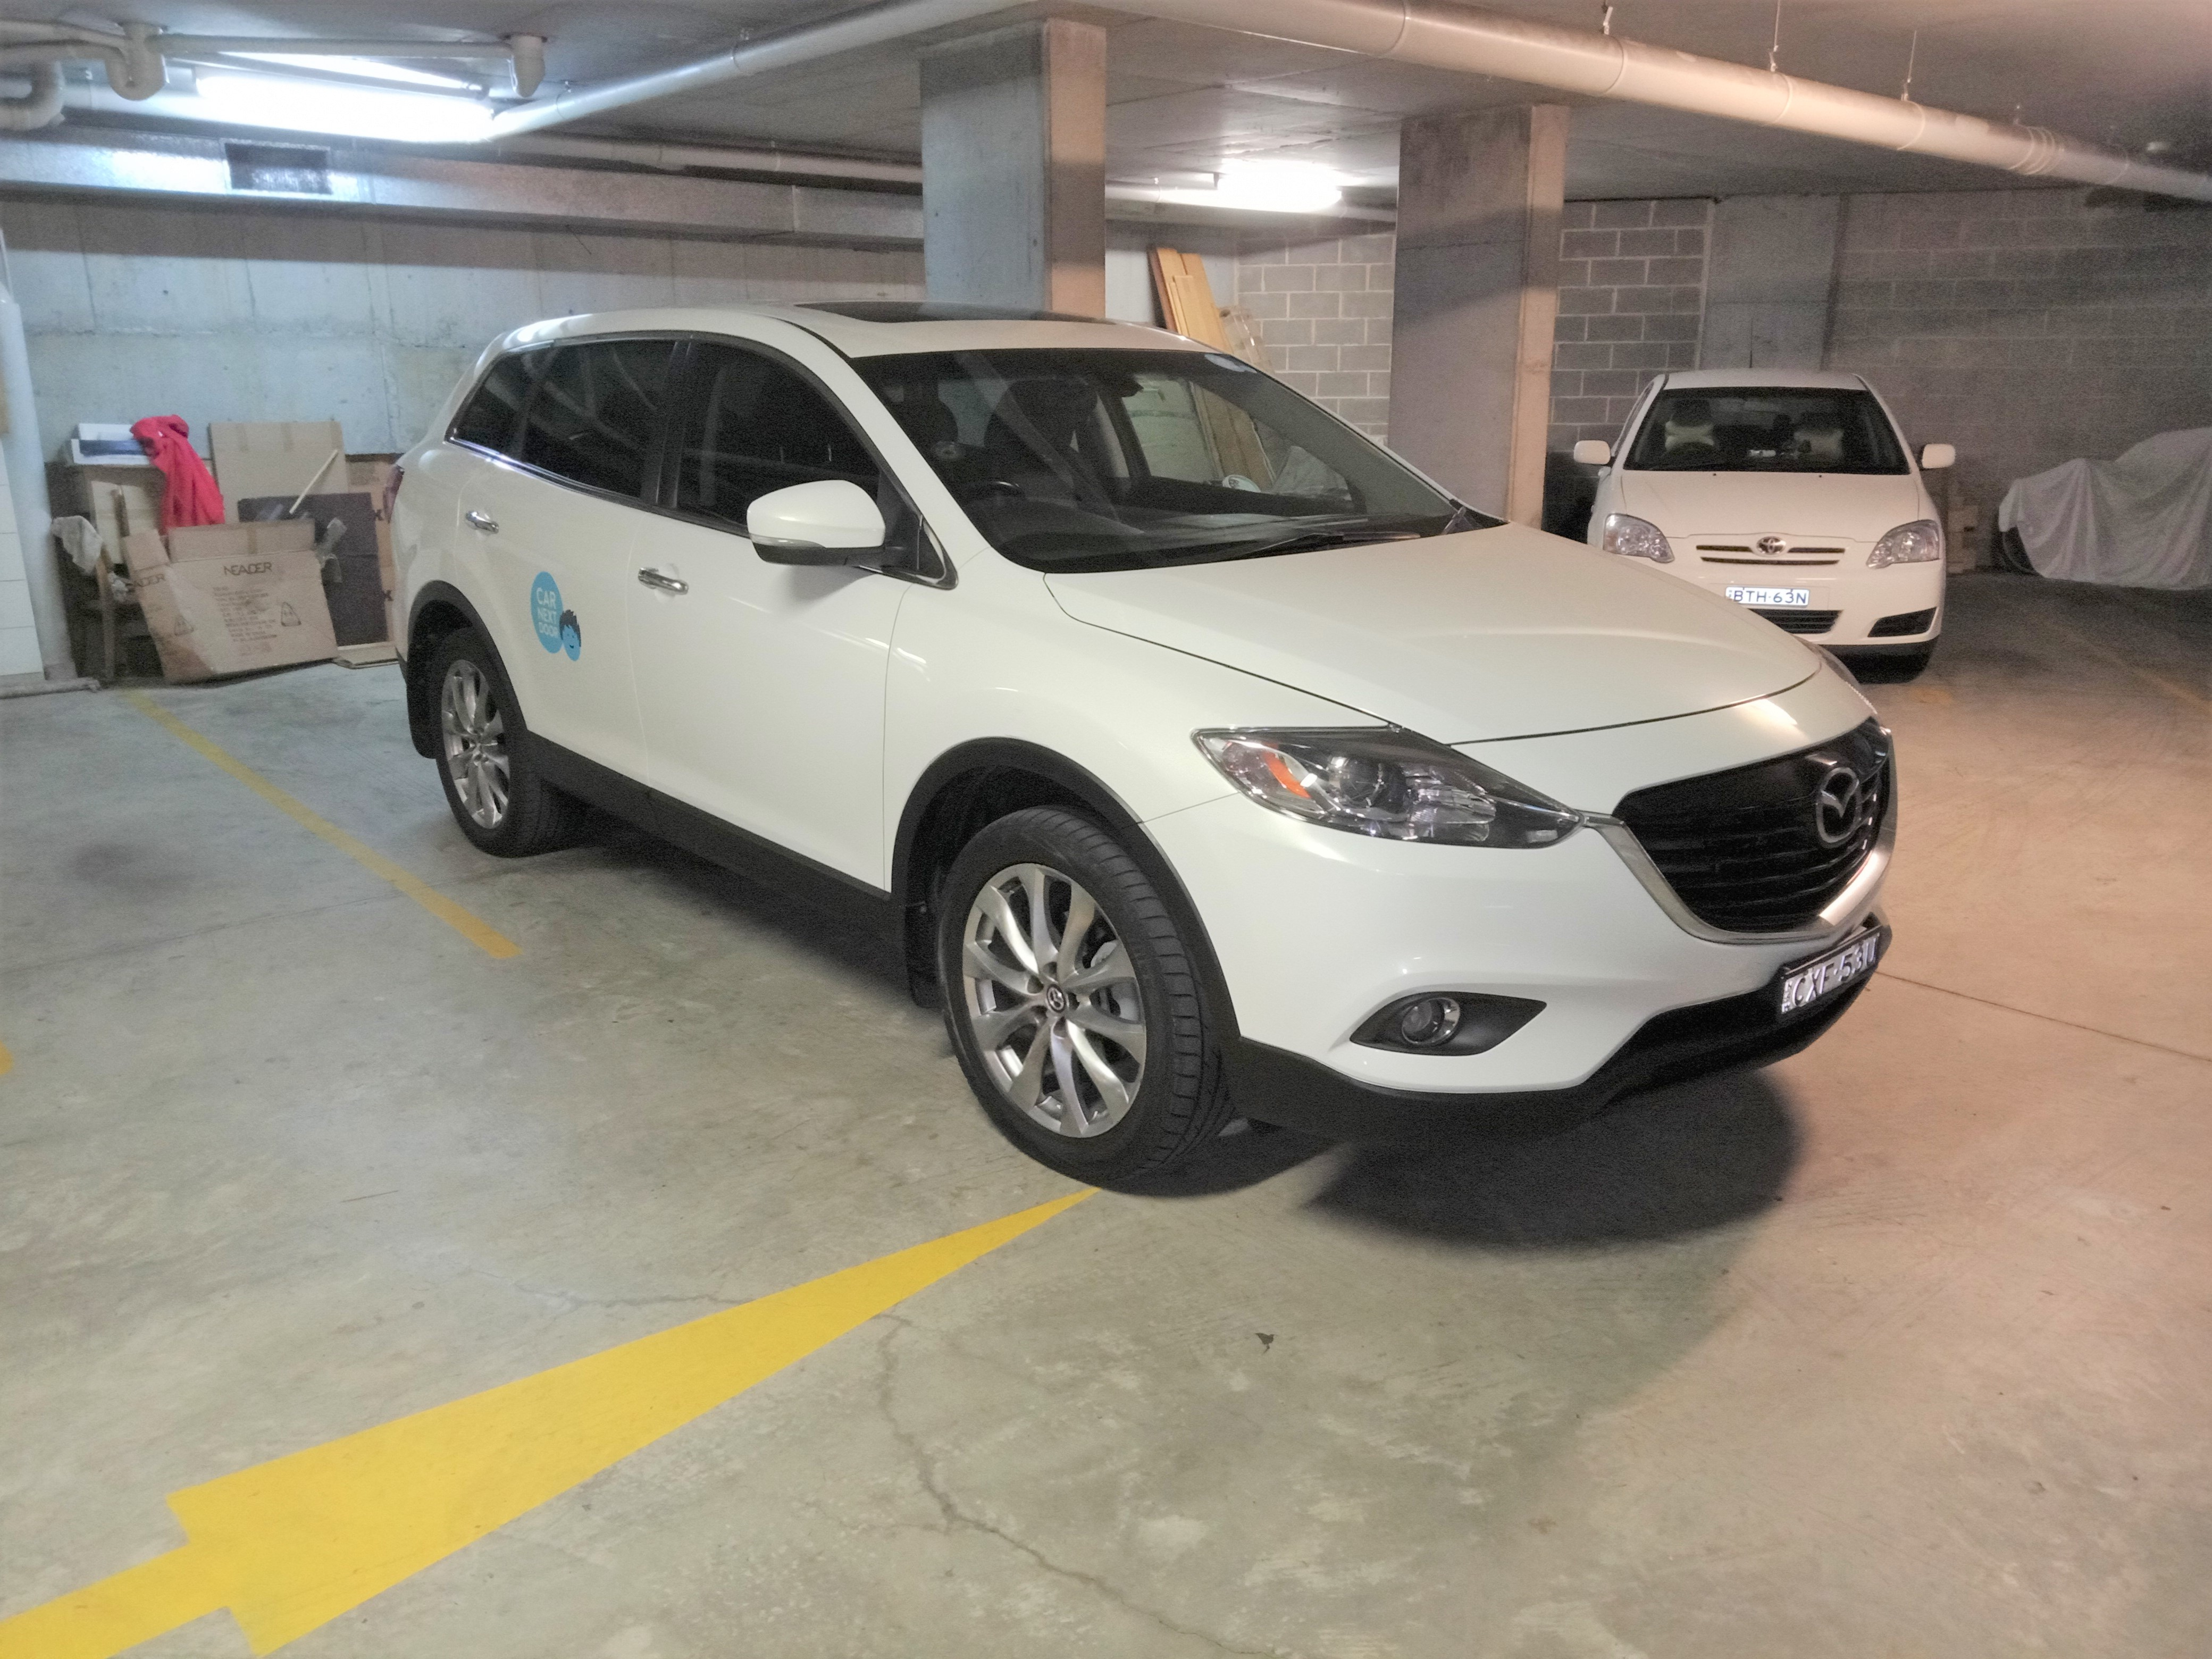 Picture of Karthikeyan's 2014 Mazda CX9